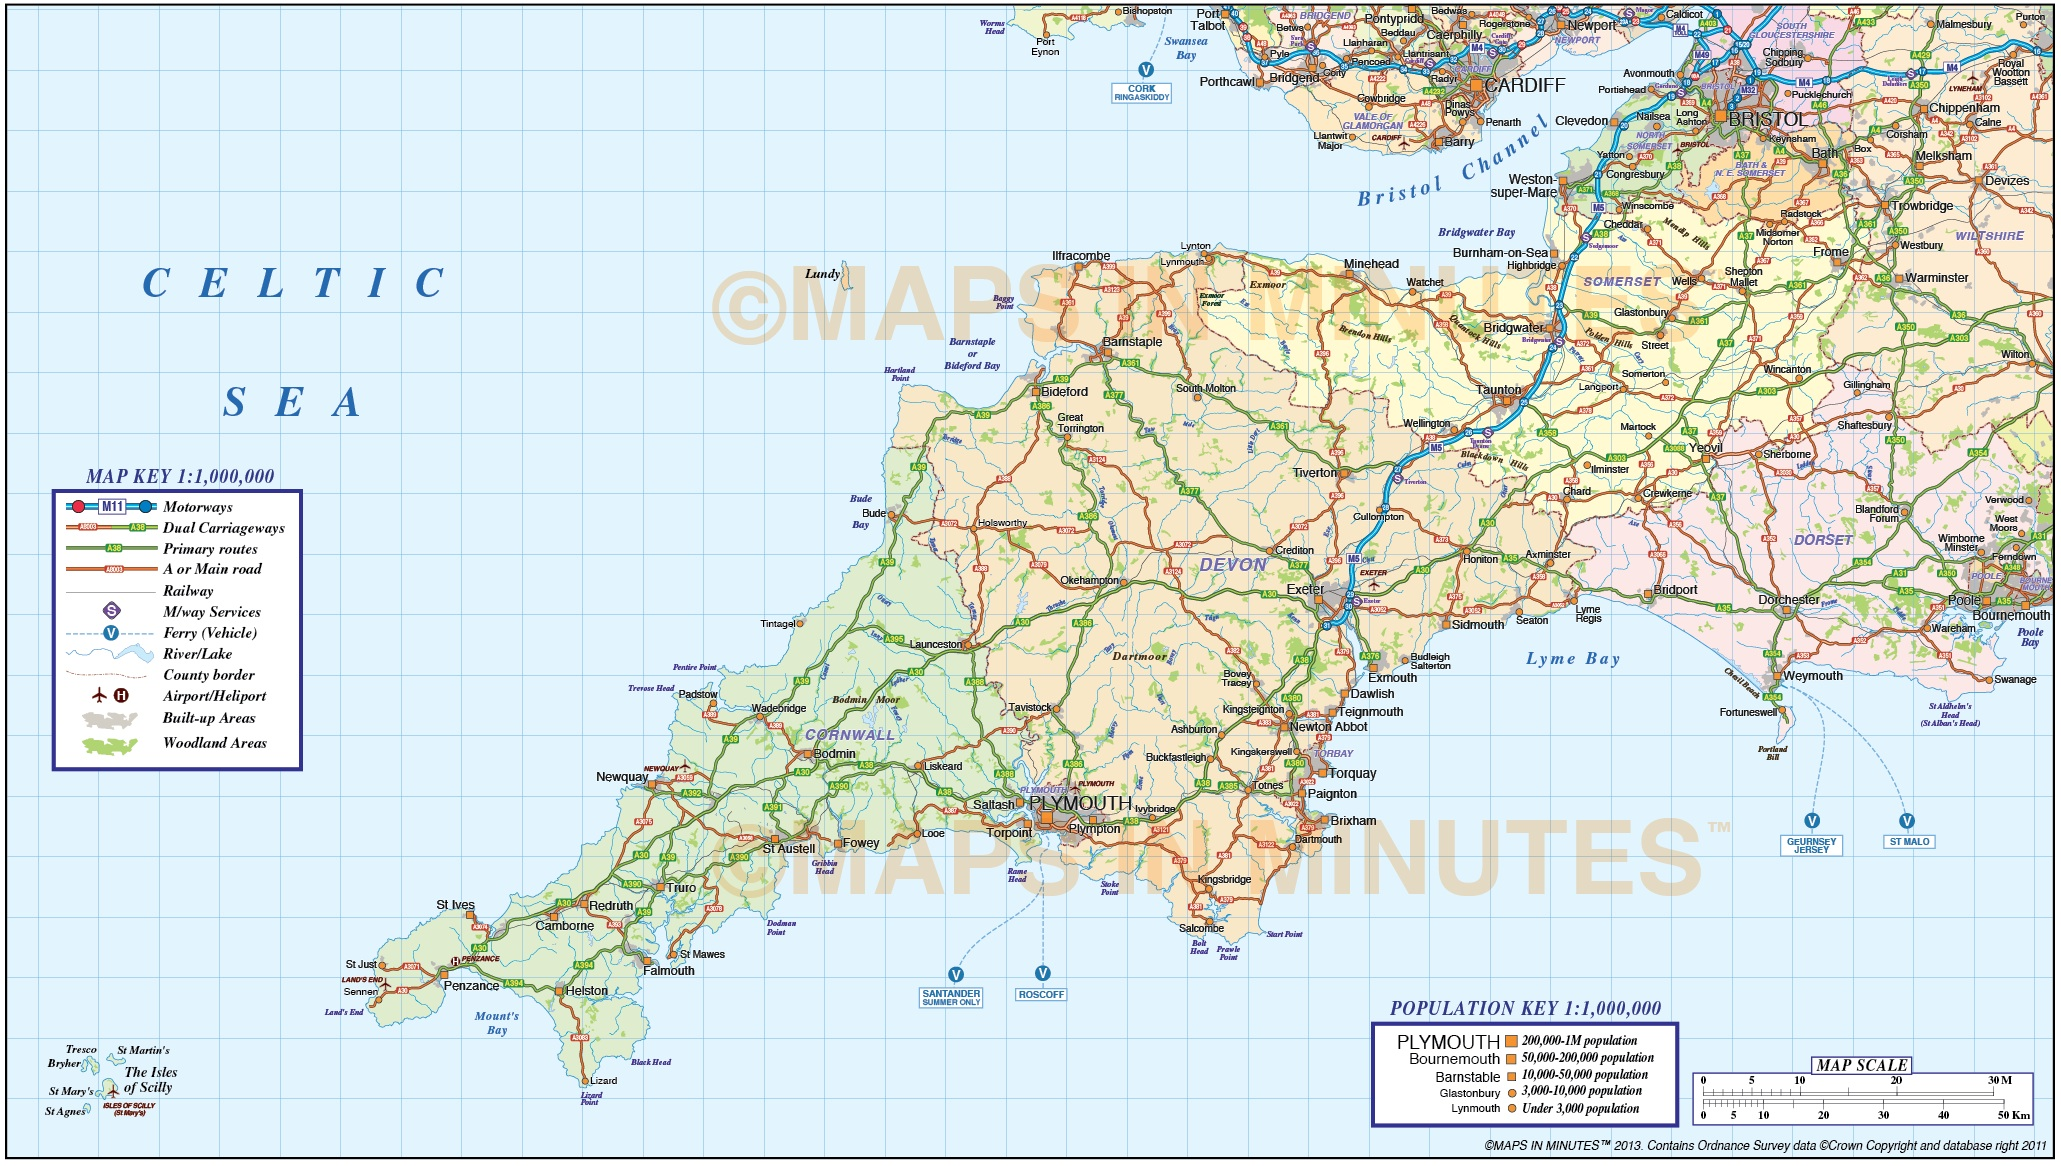 Map Of South West Map Of Sw England ~ CVLN RP